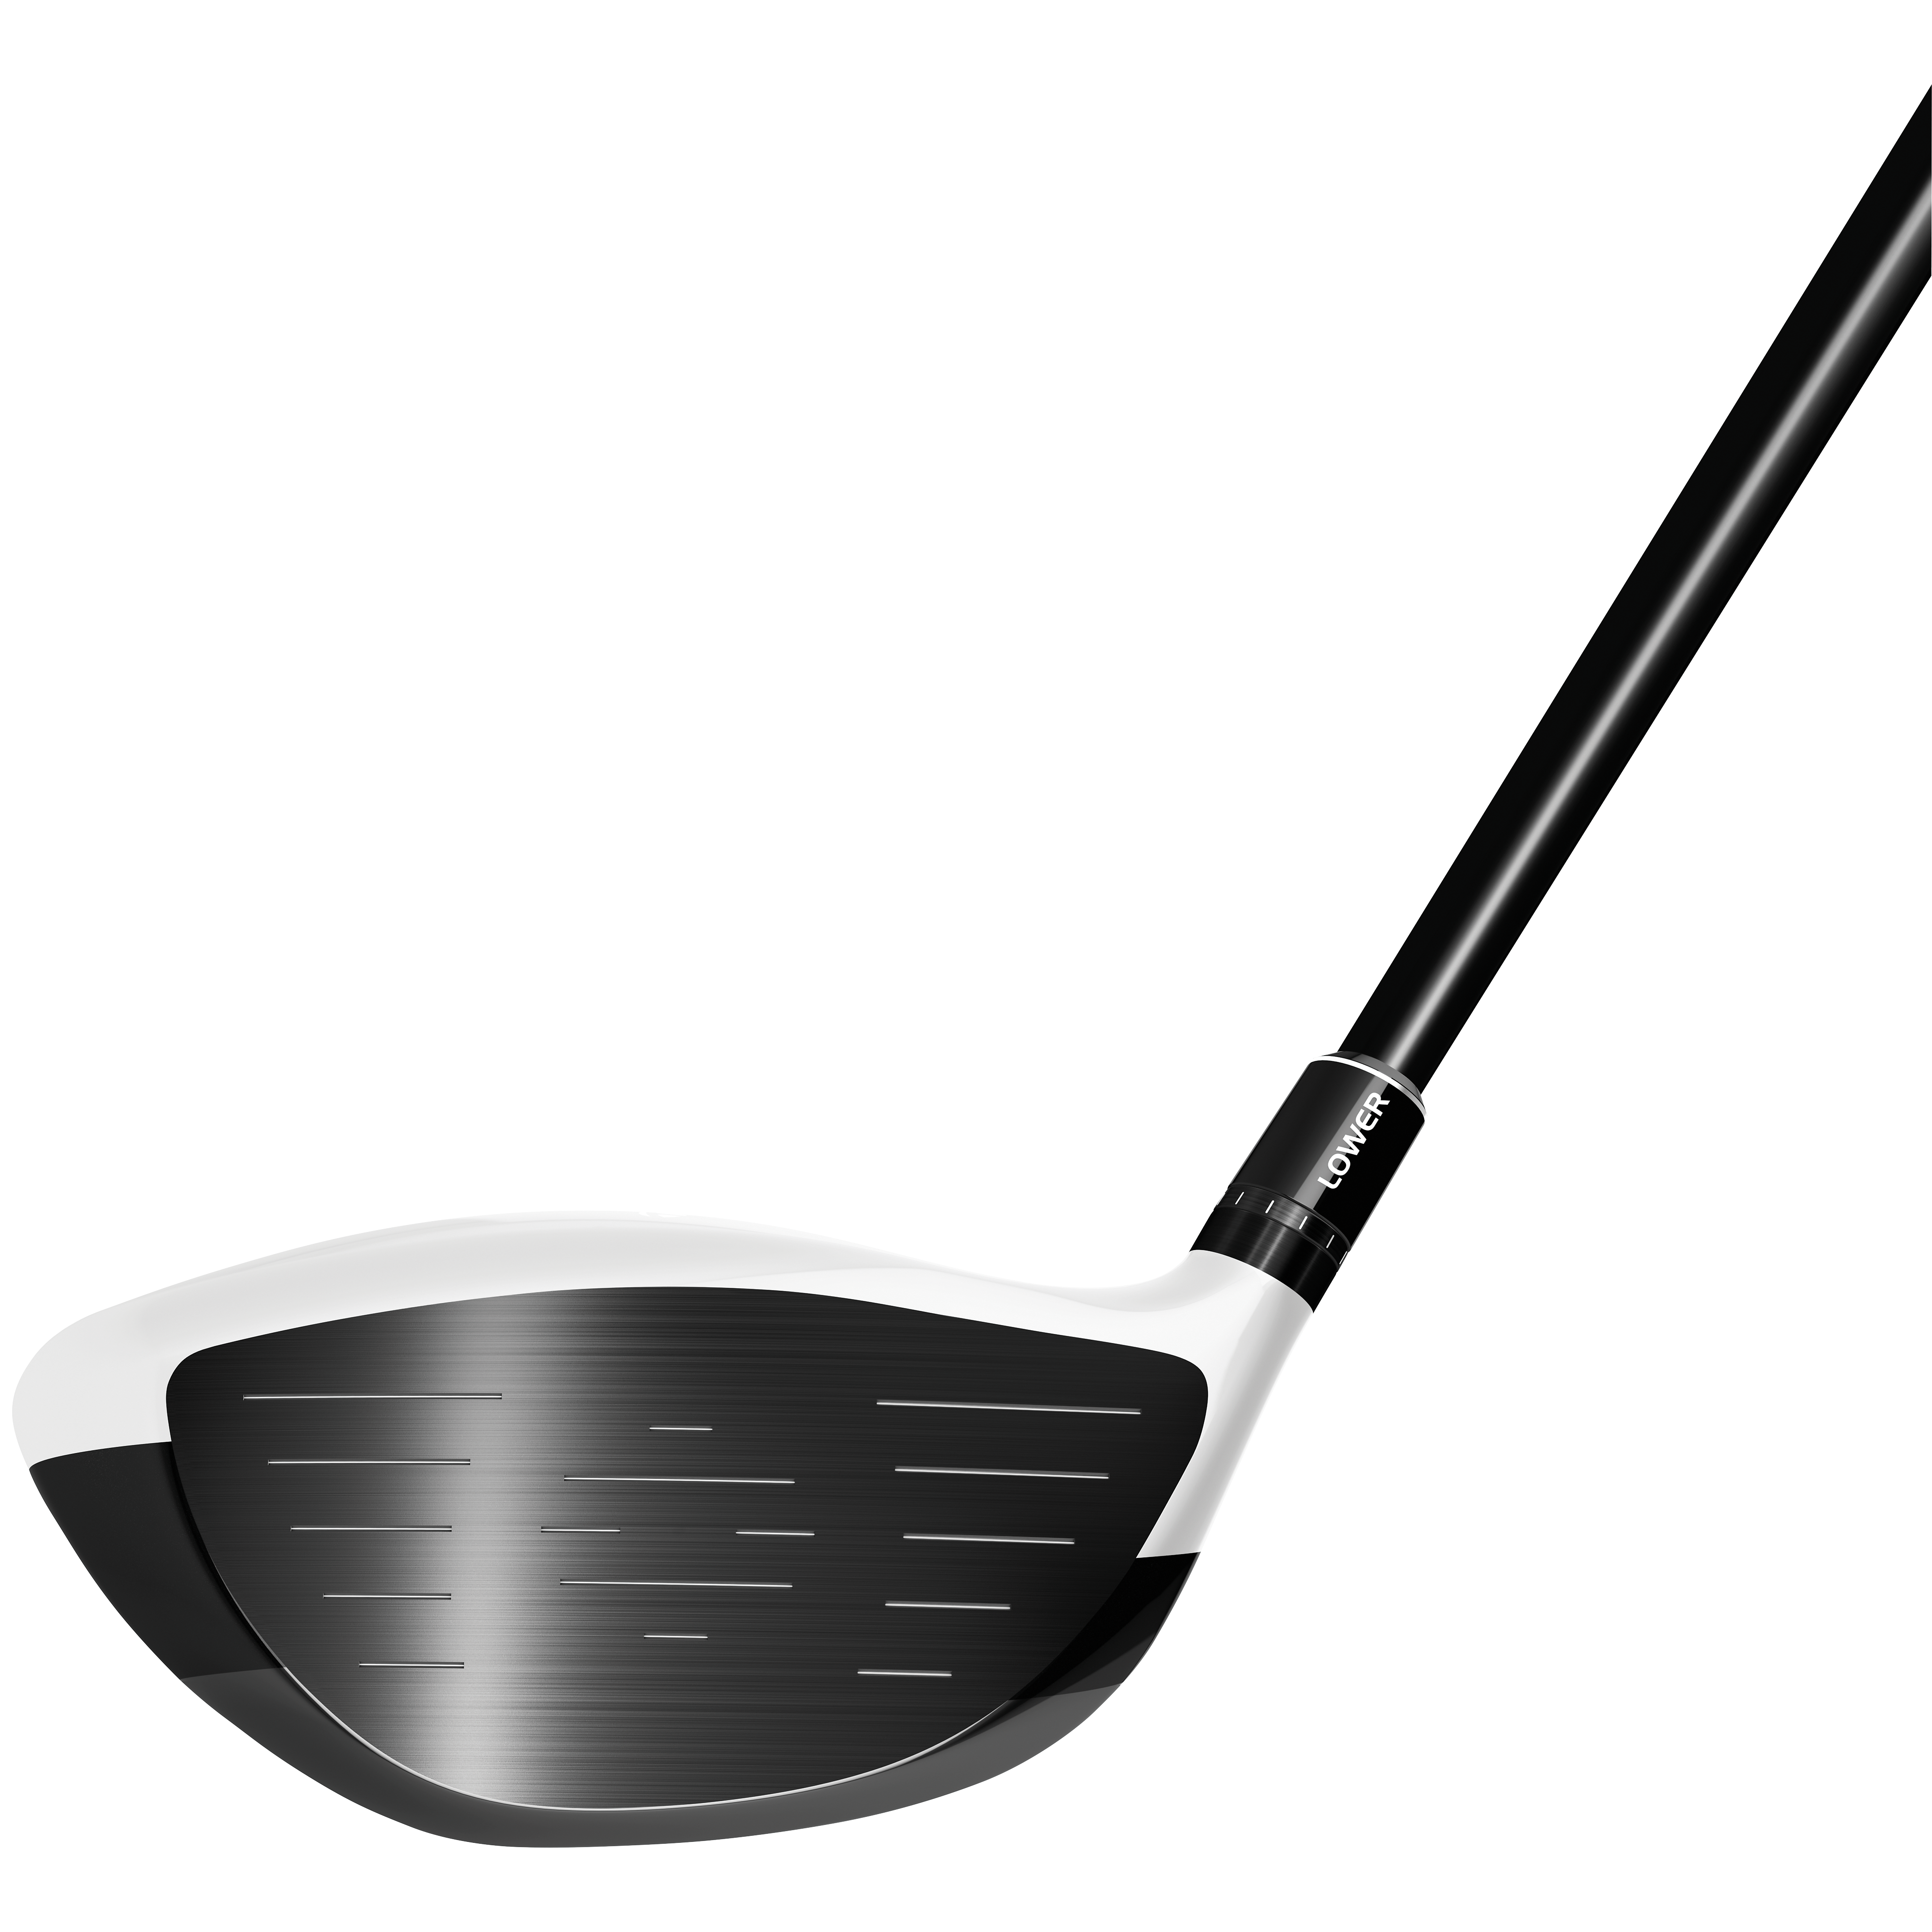 4096x4096 Taylormade Golf Company Completes